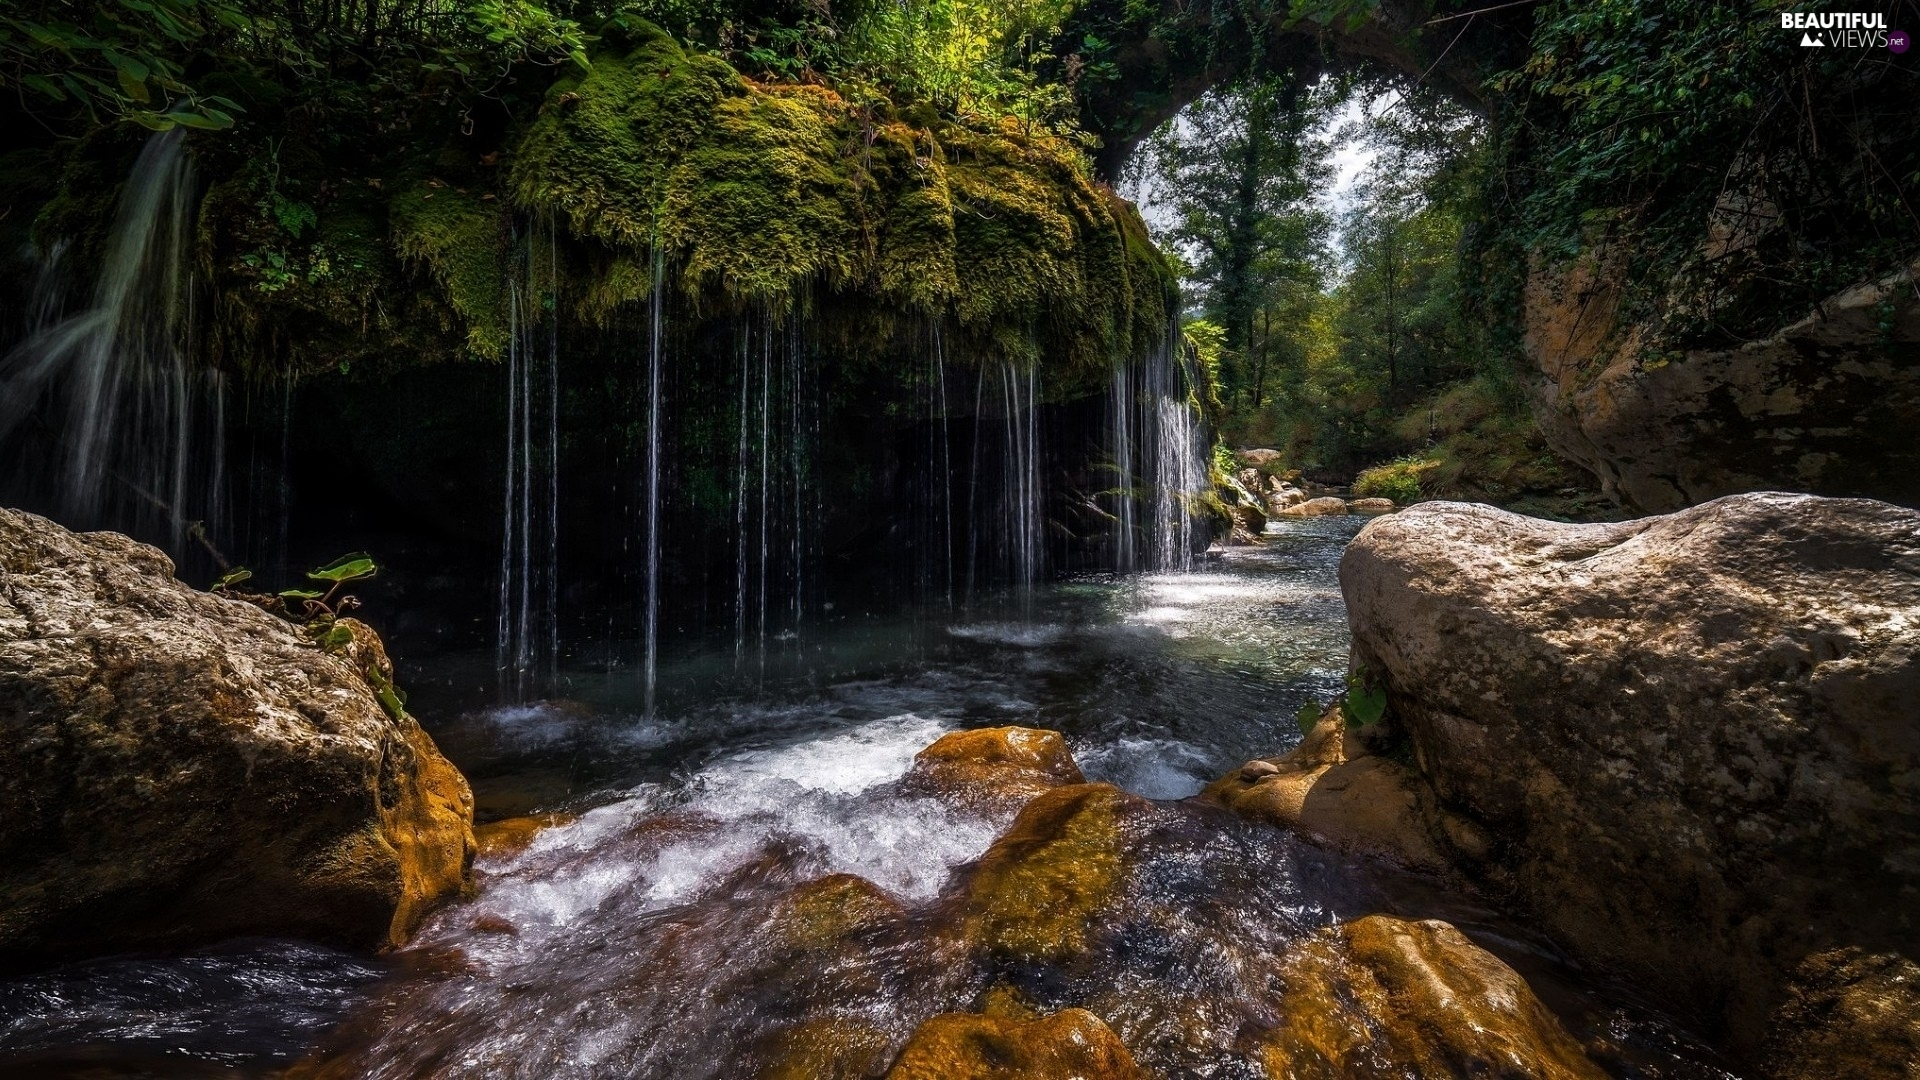 rocks, trees, waterfall, viewes, Moss, Stones, River, VEGETATION